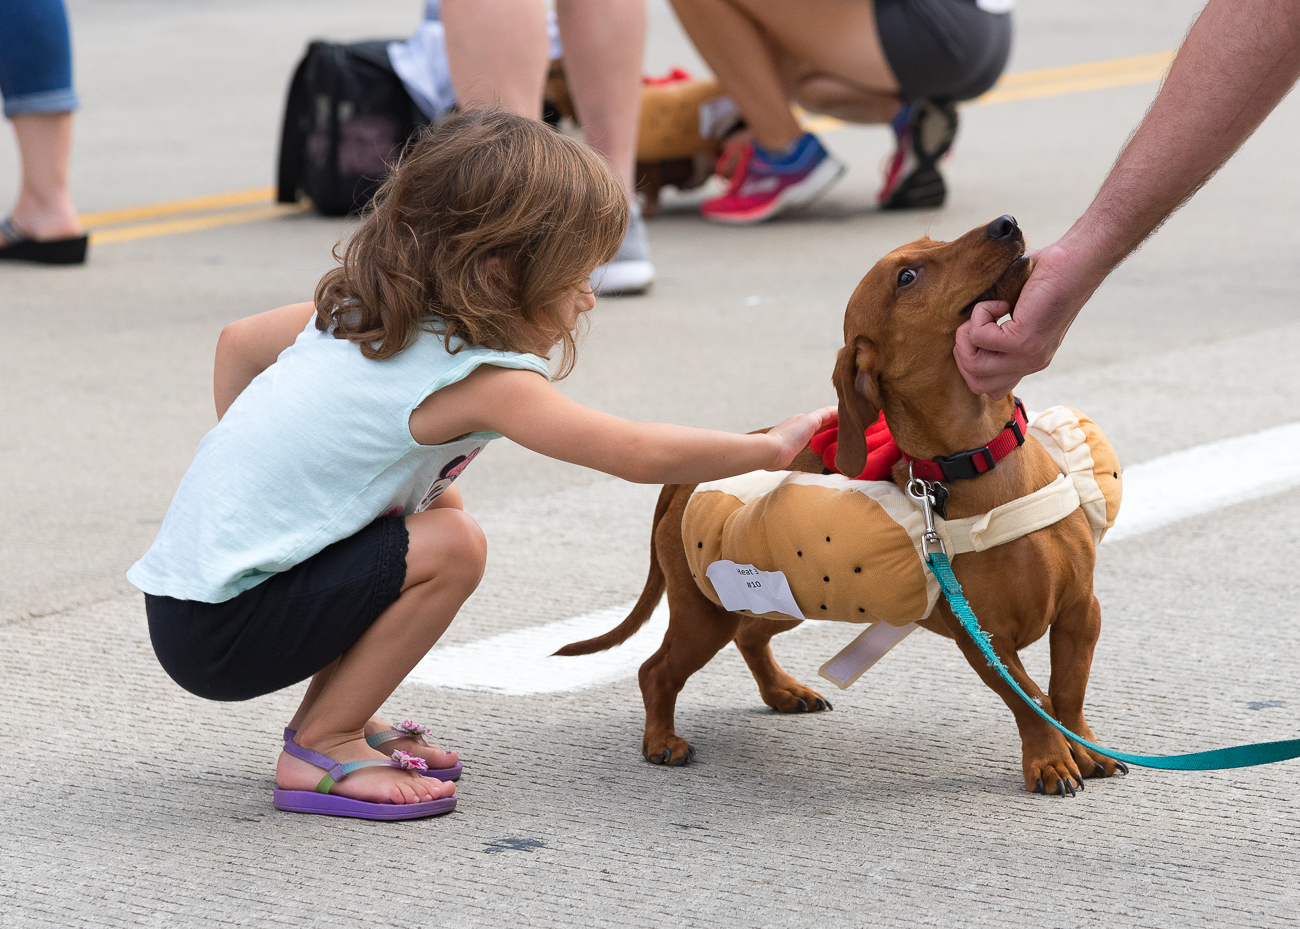 Oktoberfest embarked on another fun-filled year in the Queen City with the 11th annual Running of the Wieners at the Banks on Friday, September 21. / Image: Phil Armstrong, Cincinnati Refined // Published: 9.21.18